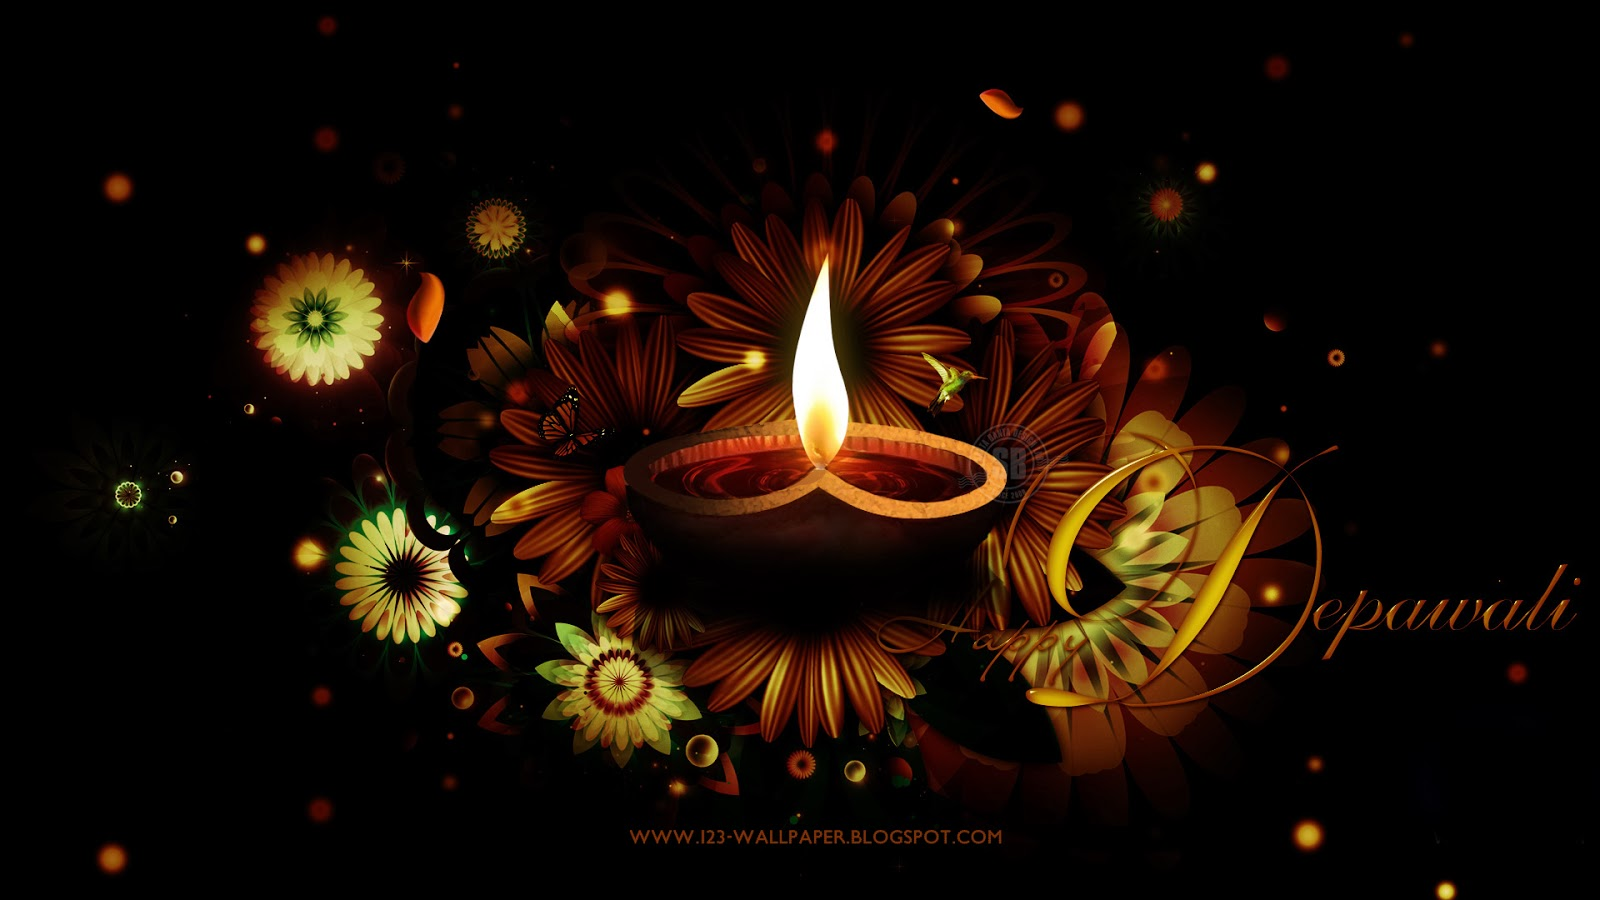 beautiful happy diwali wallpapers and greetings for year